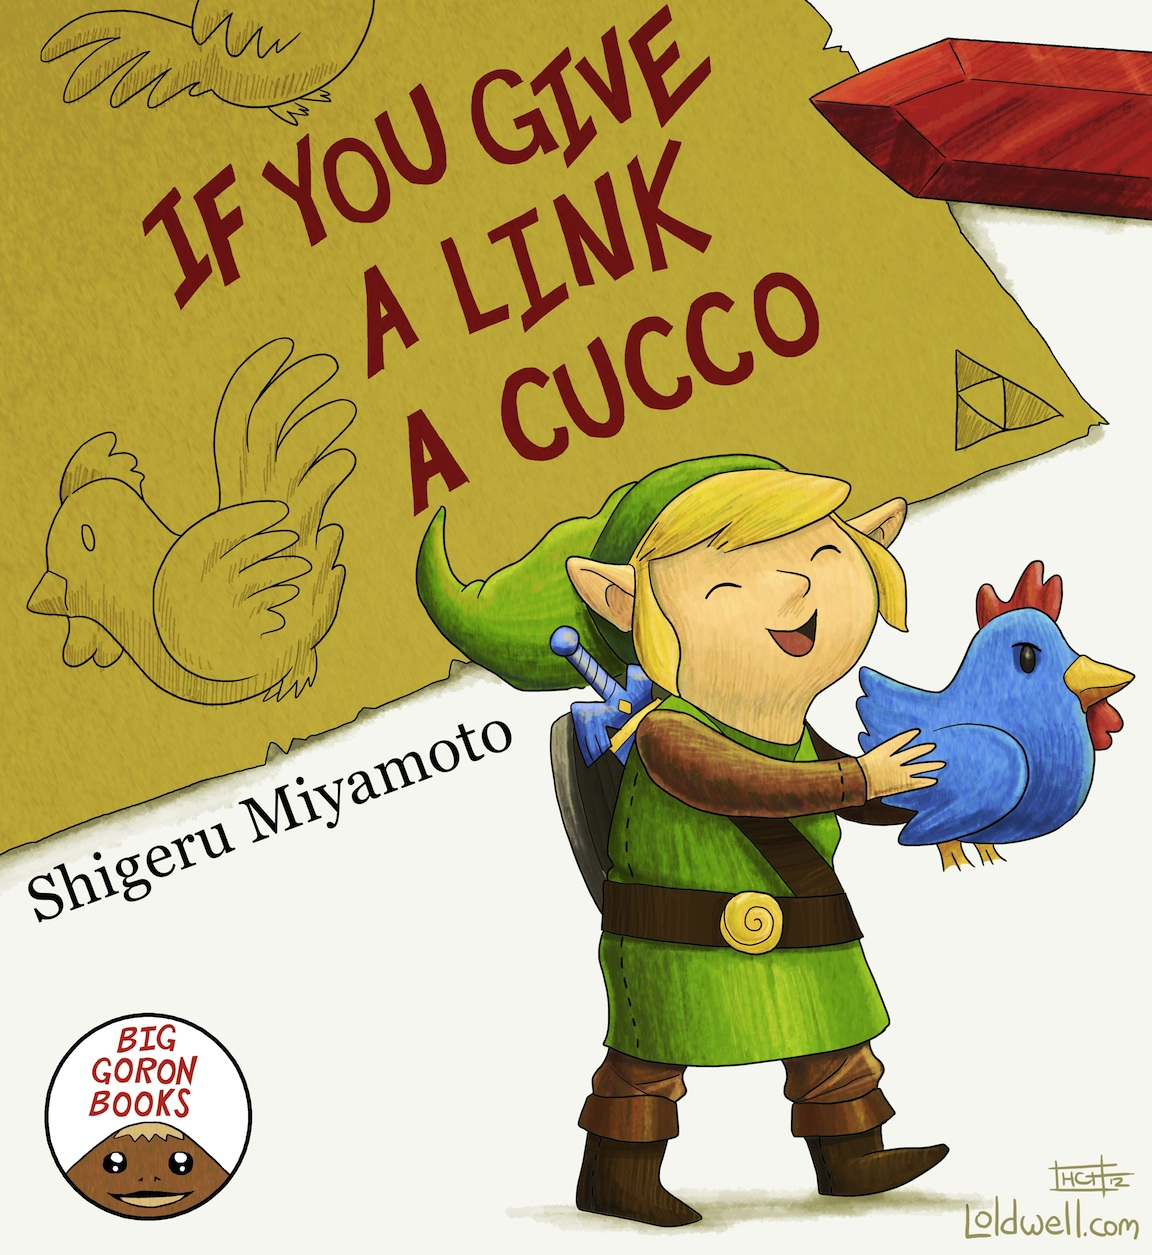 If You Give a Link a Cucco